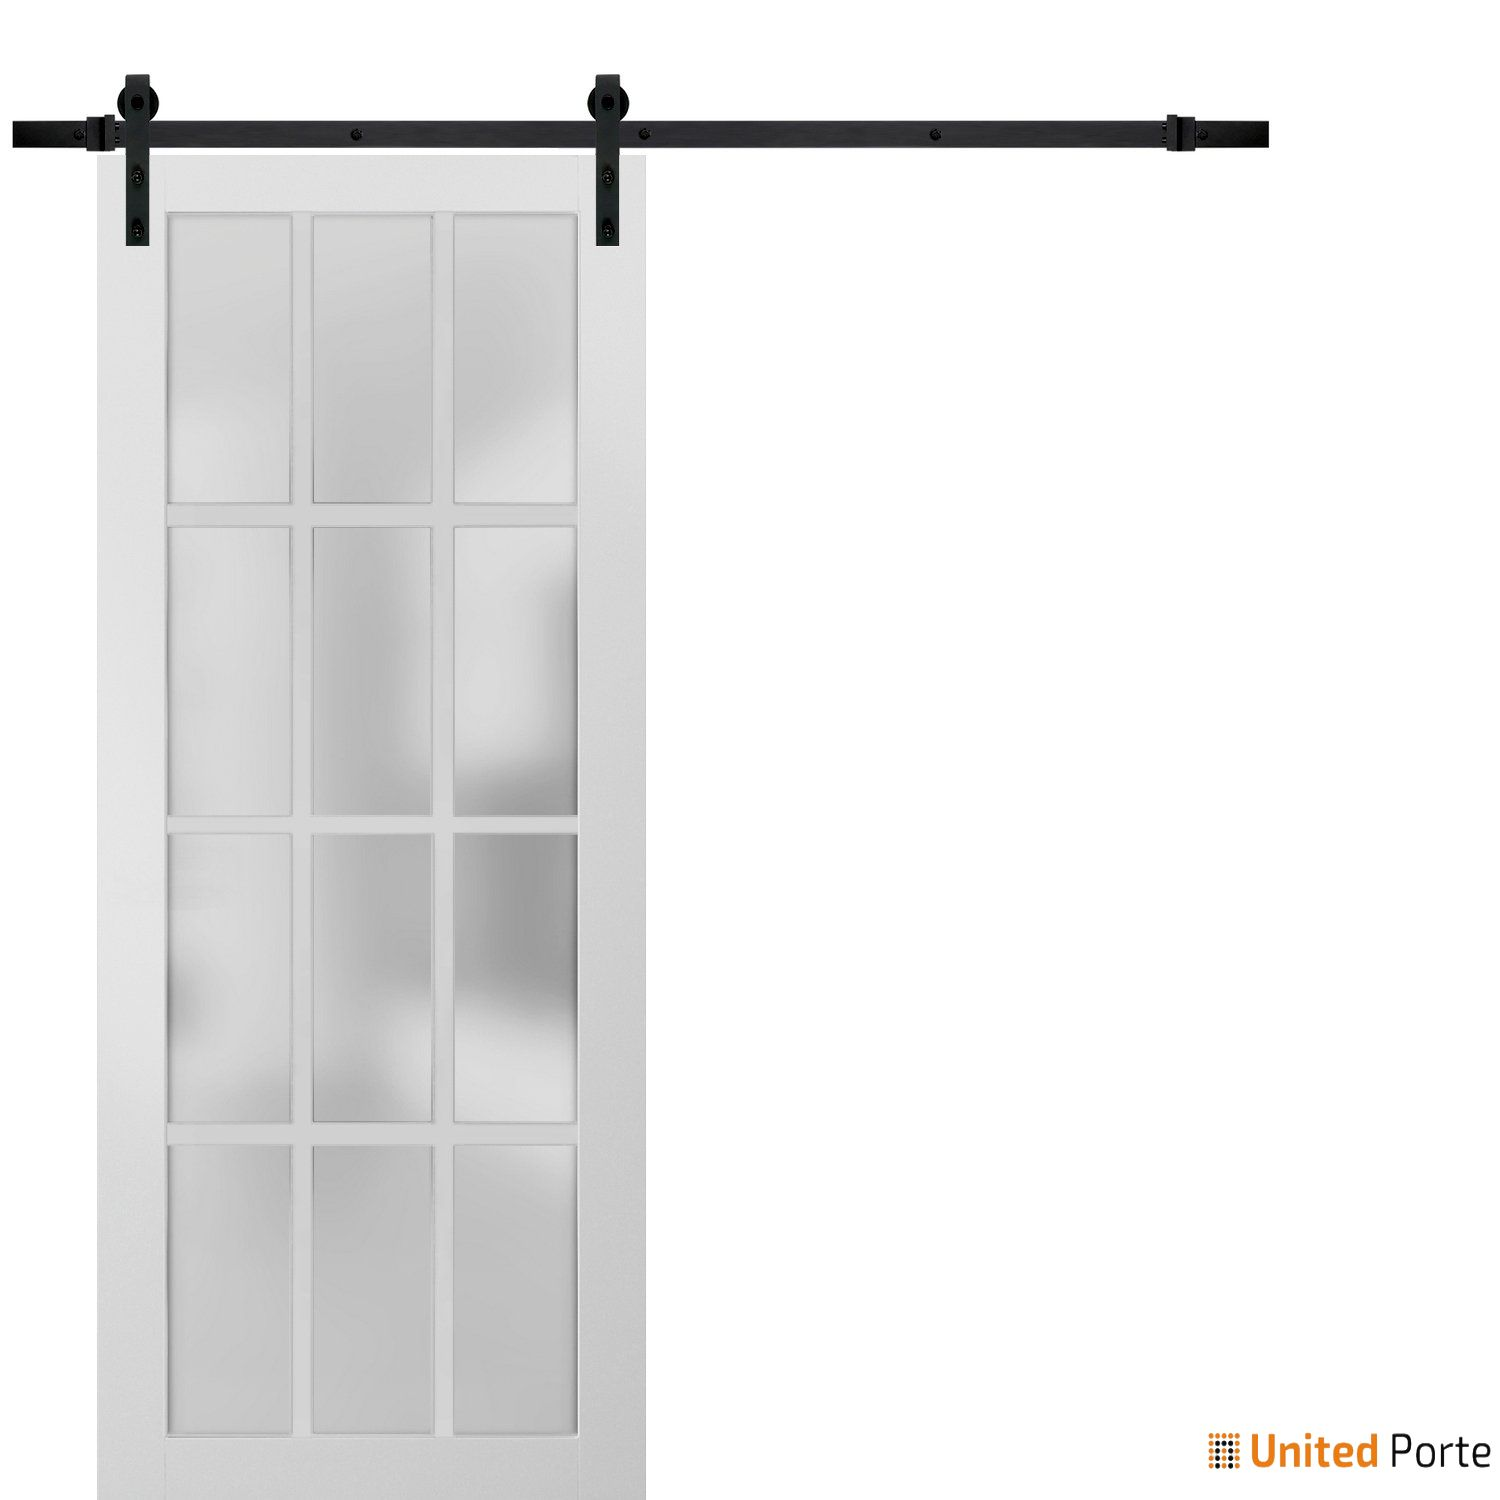 Felicia 3312 White Sturdy Barn Door Frosted Glass 12 Lites with Black Hardware | Solid Panel Interior Barn Doors